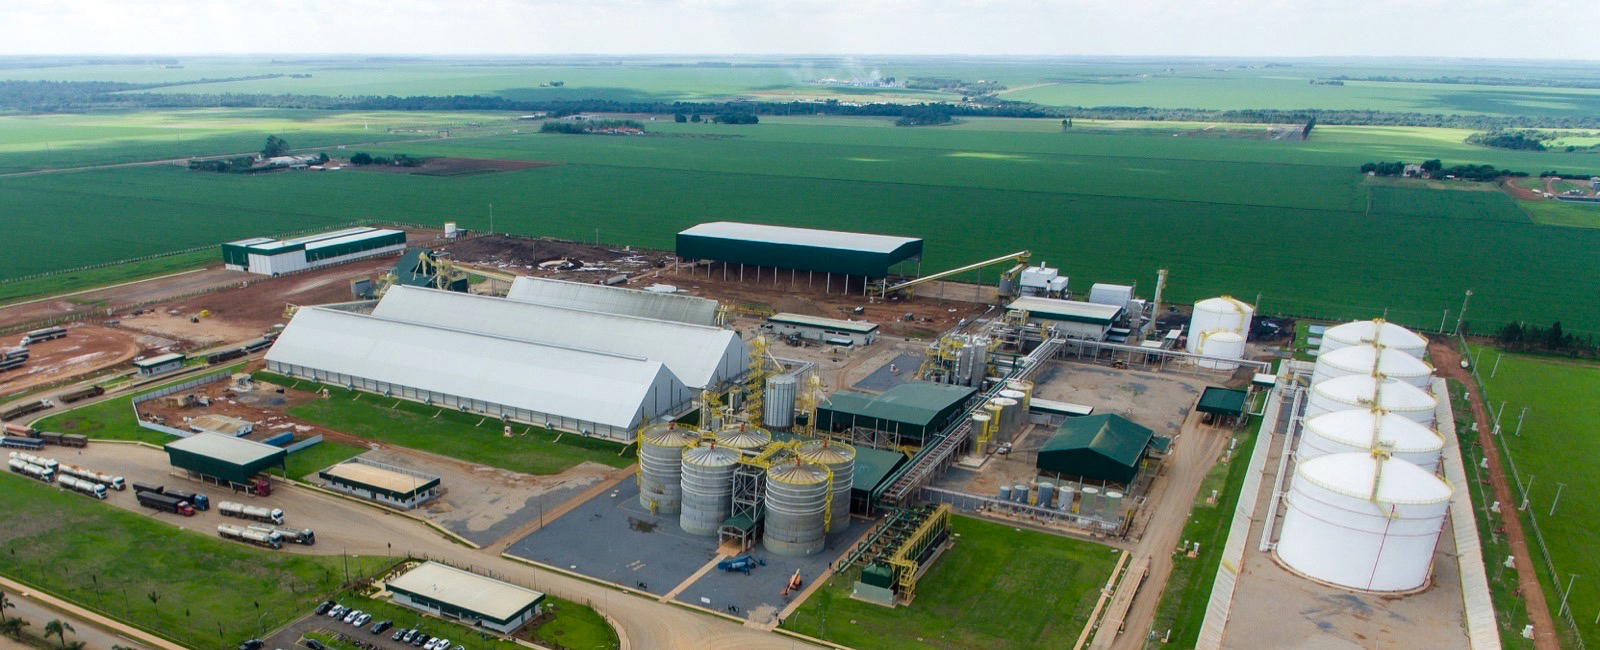 Summit Agricultural Group announced Project to double Capacity at Corn-to-Ethanol Facility in Brazil